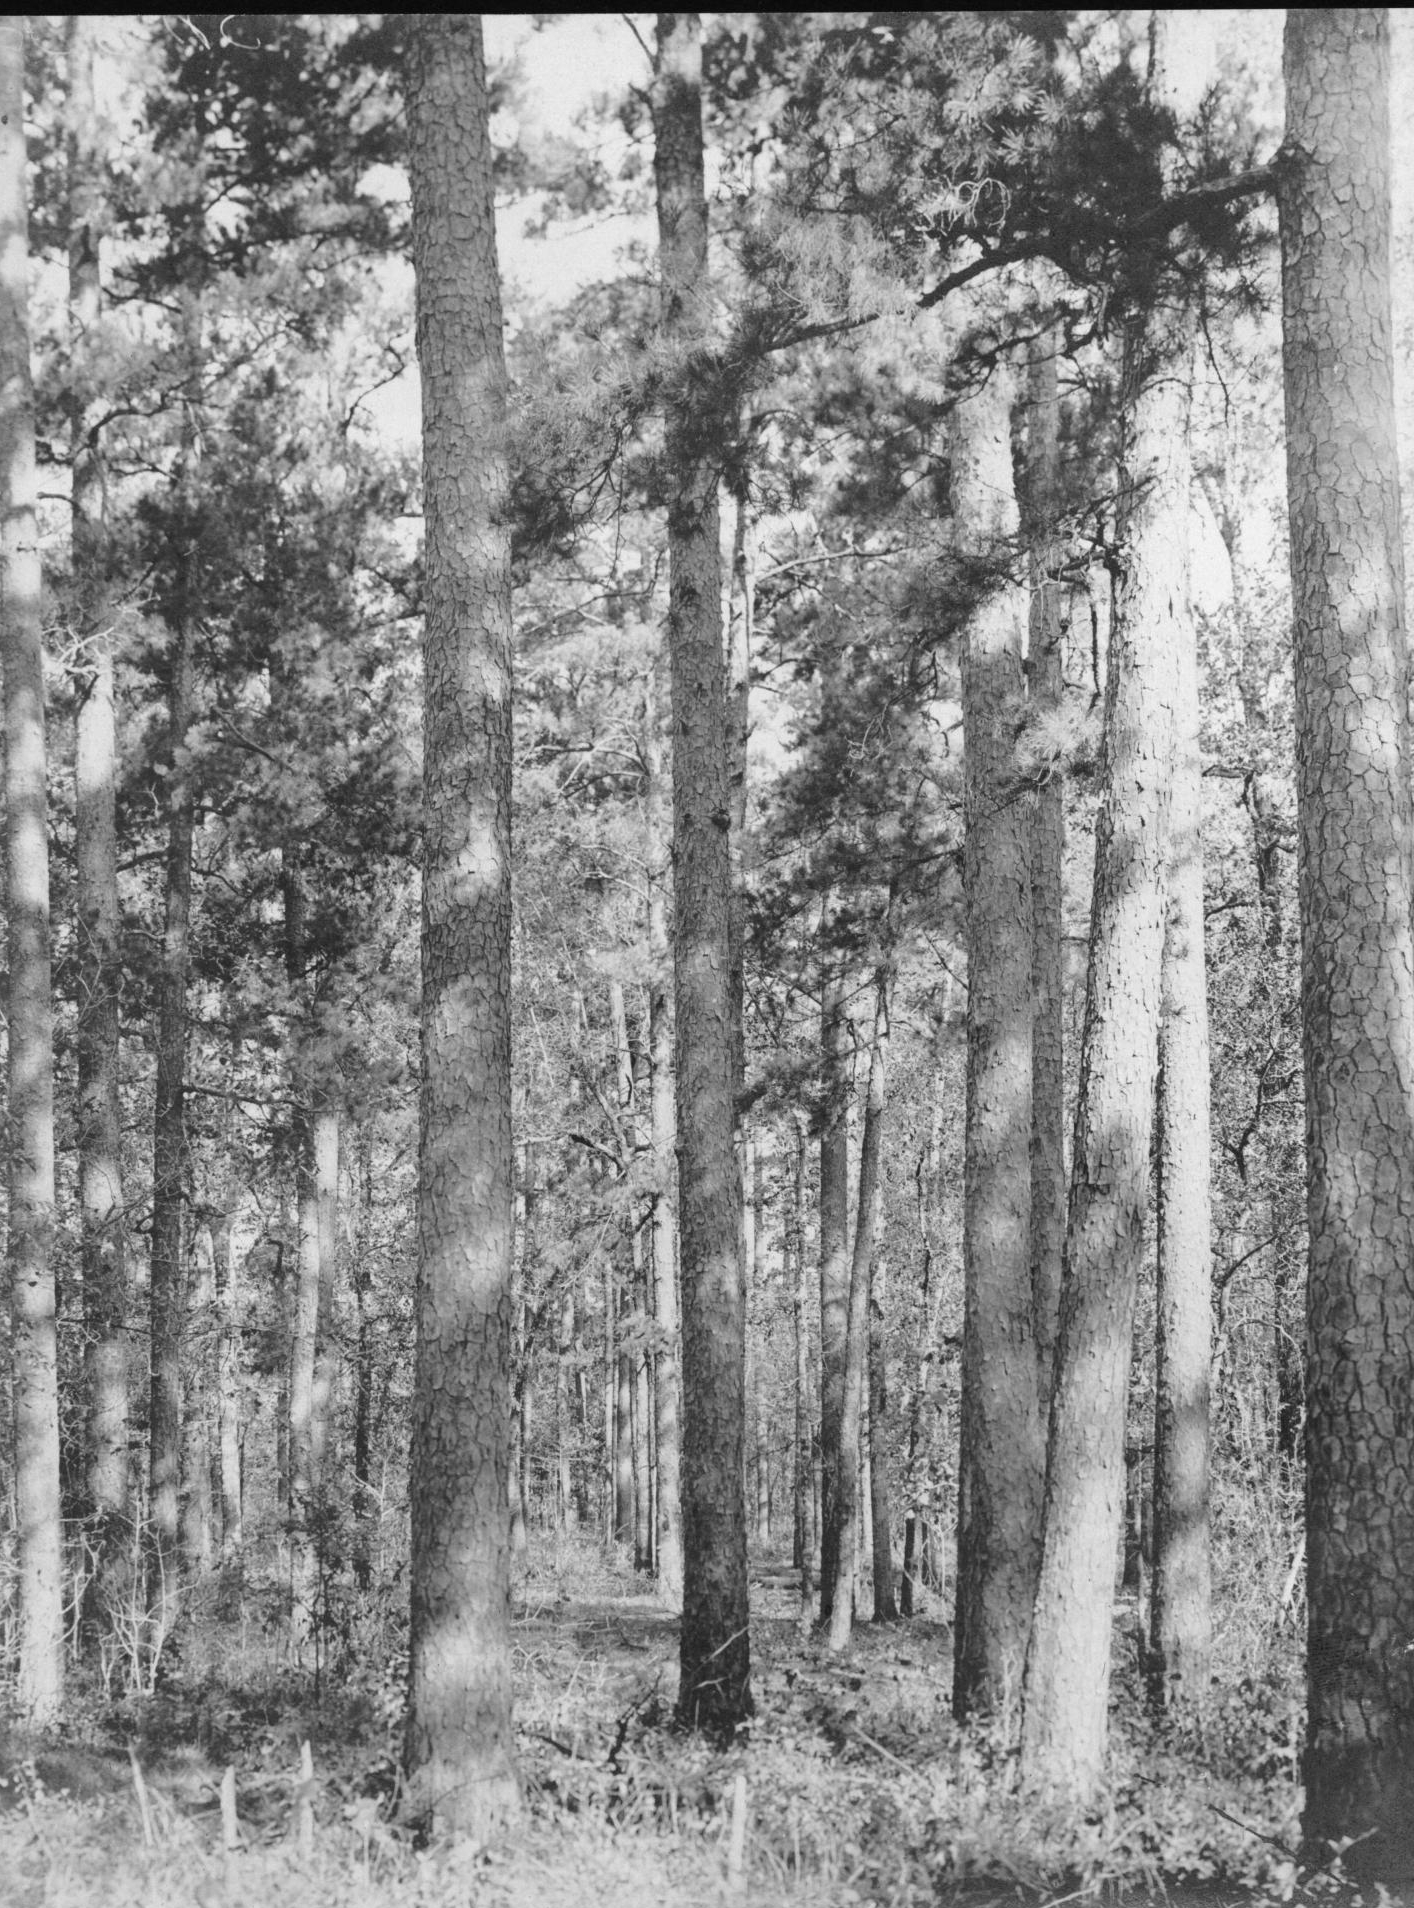 S. P. 308 Shortleaf Pine Timber near the Cotton Belt Route